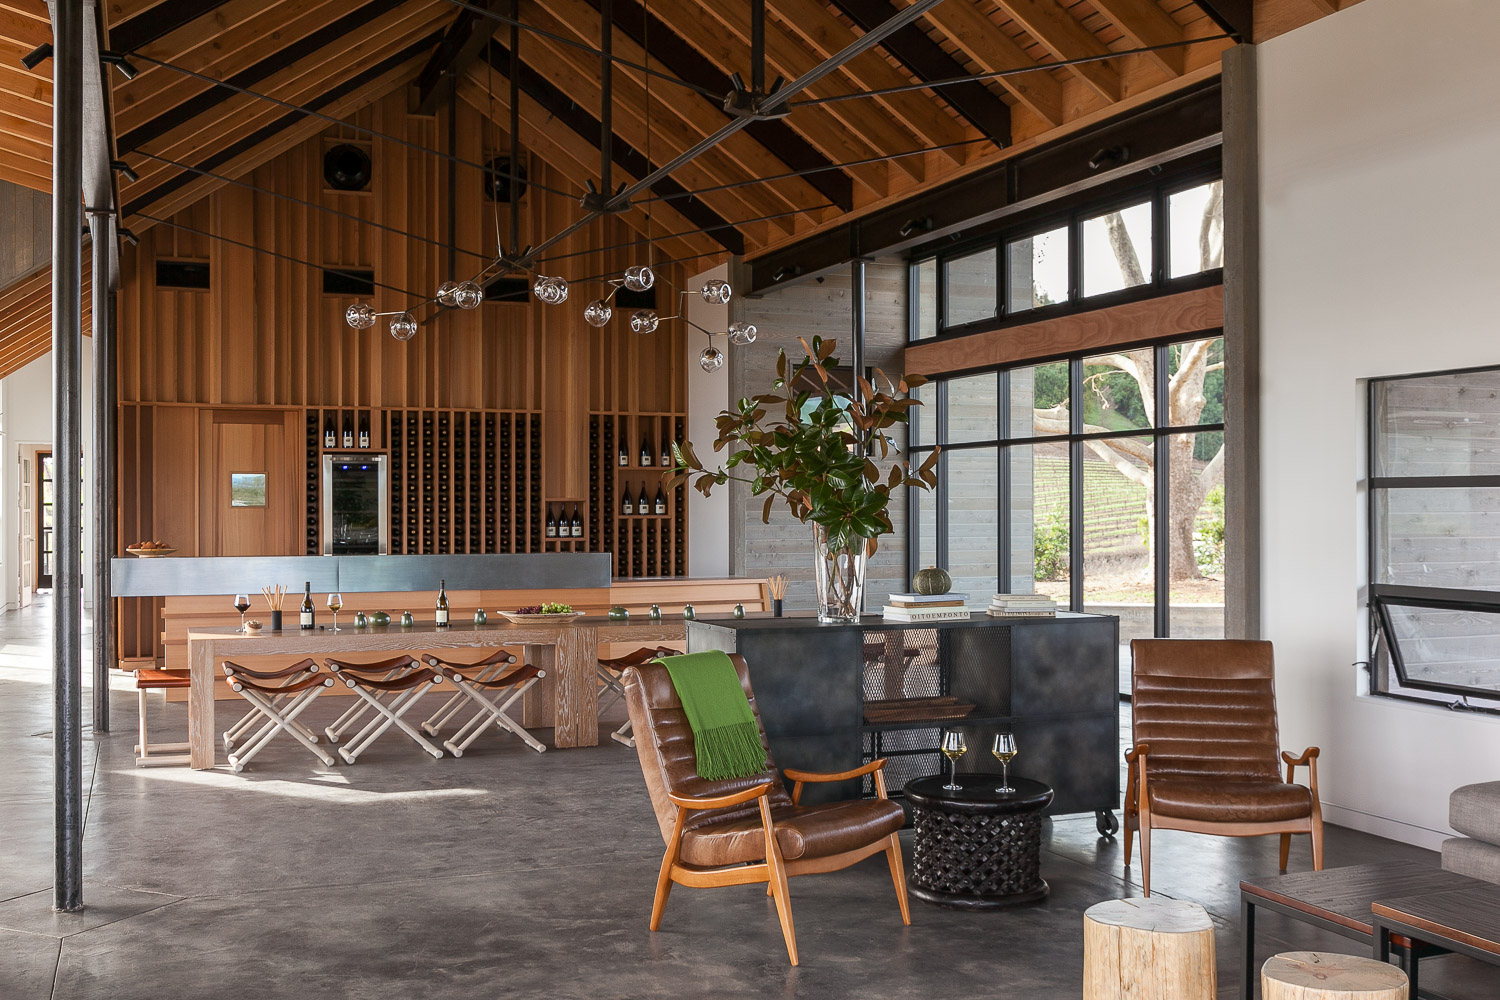 MacRostie Winery's estate house tasting room features high ceilings and a large expanse of windows letting in streaming sunlight.